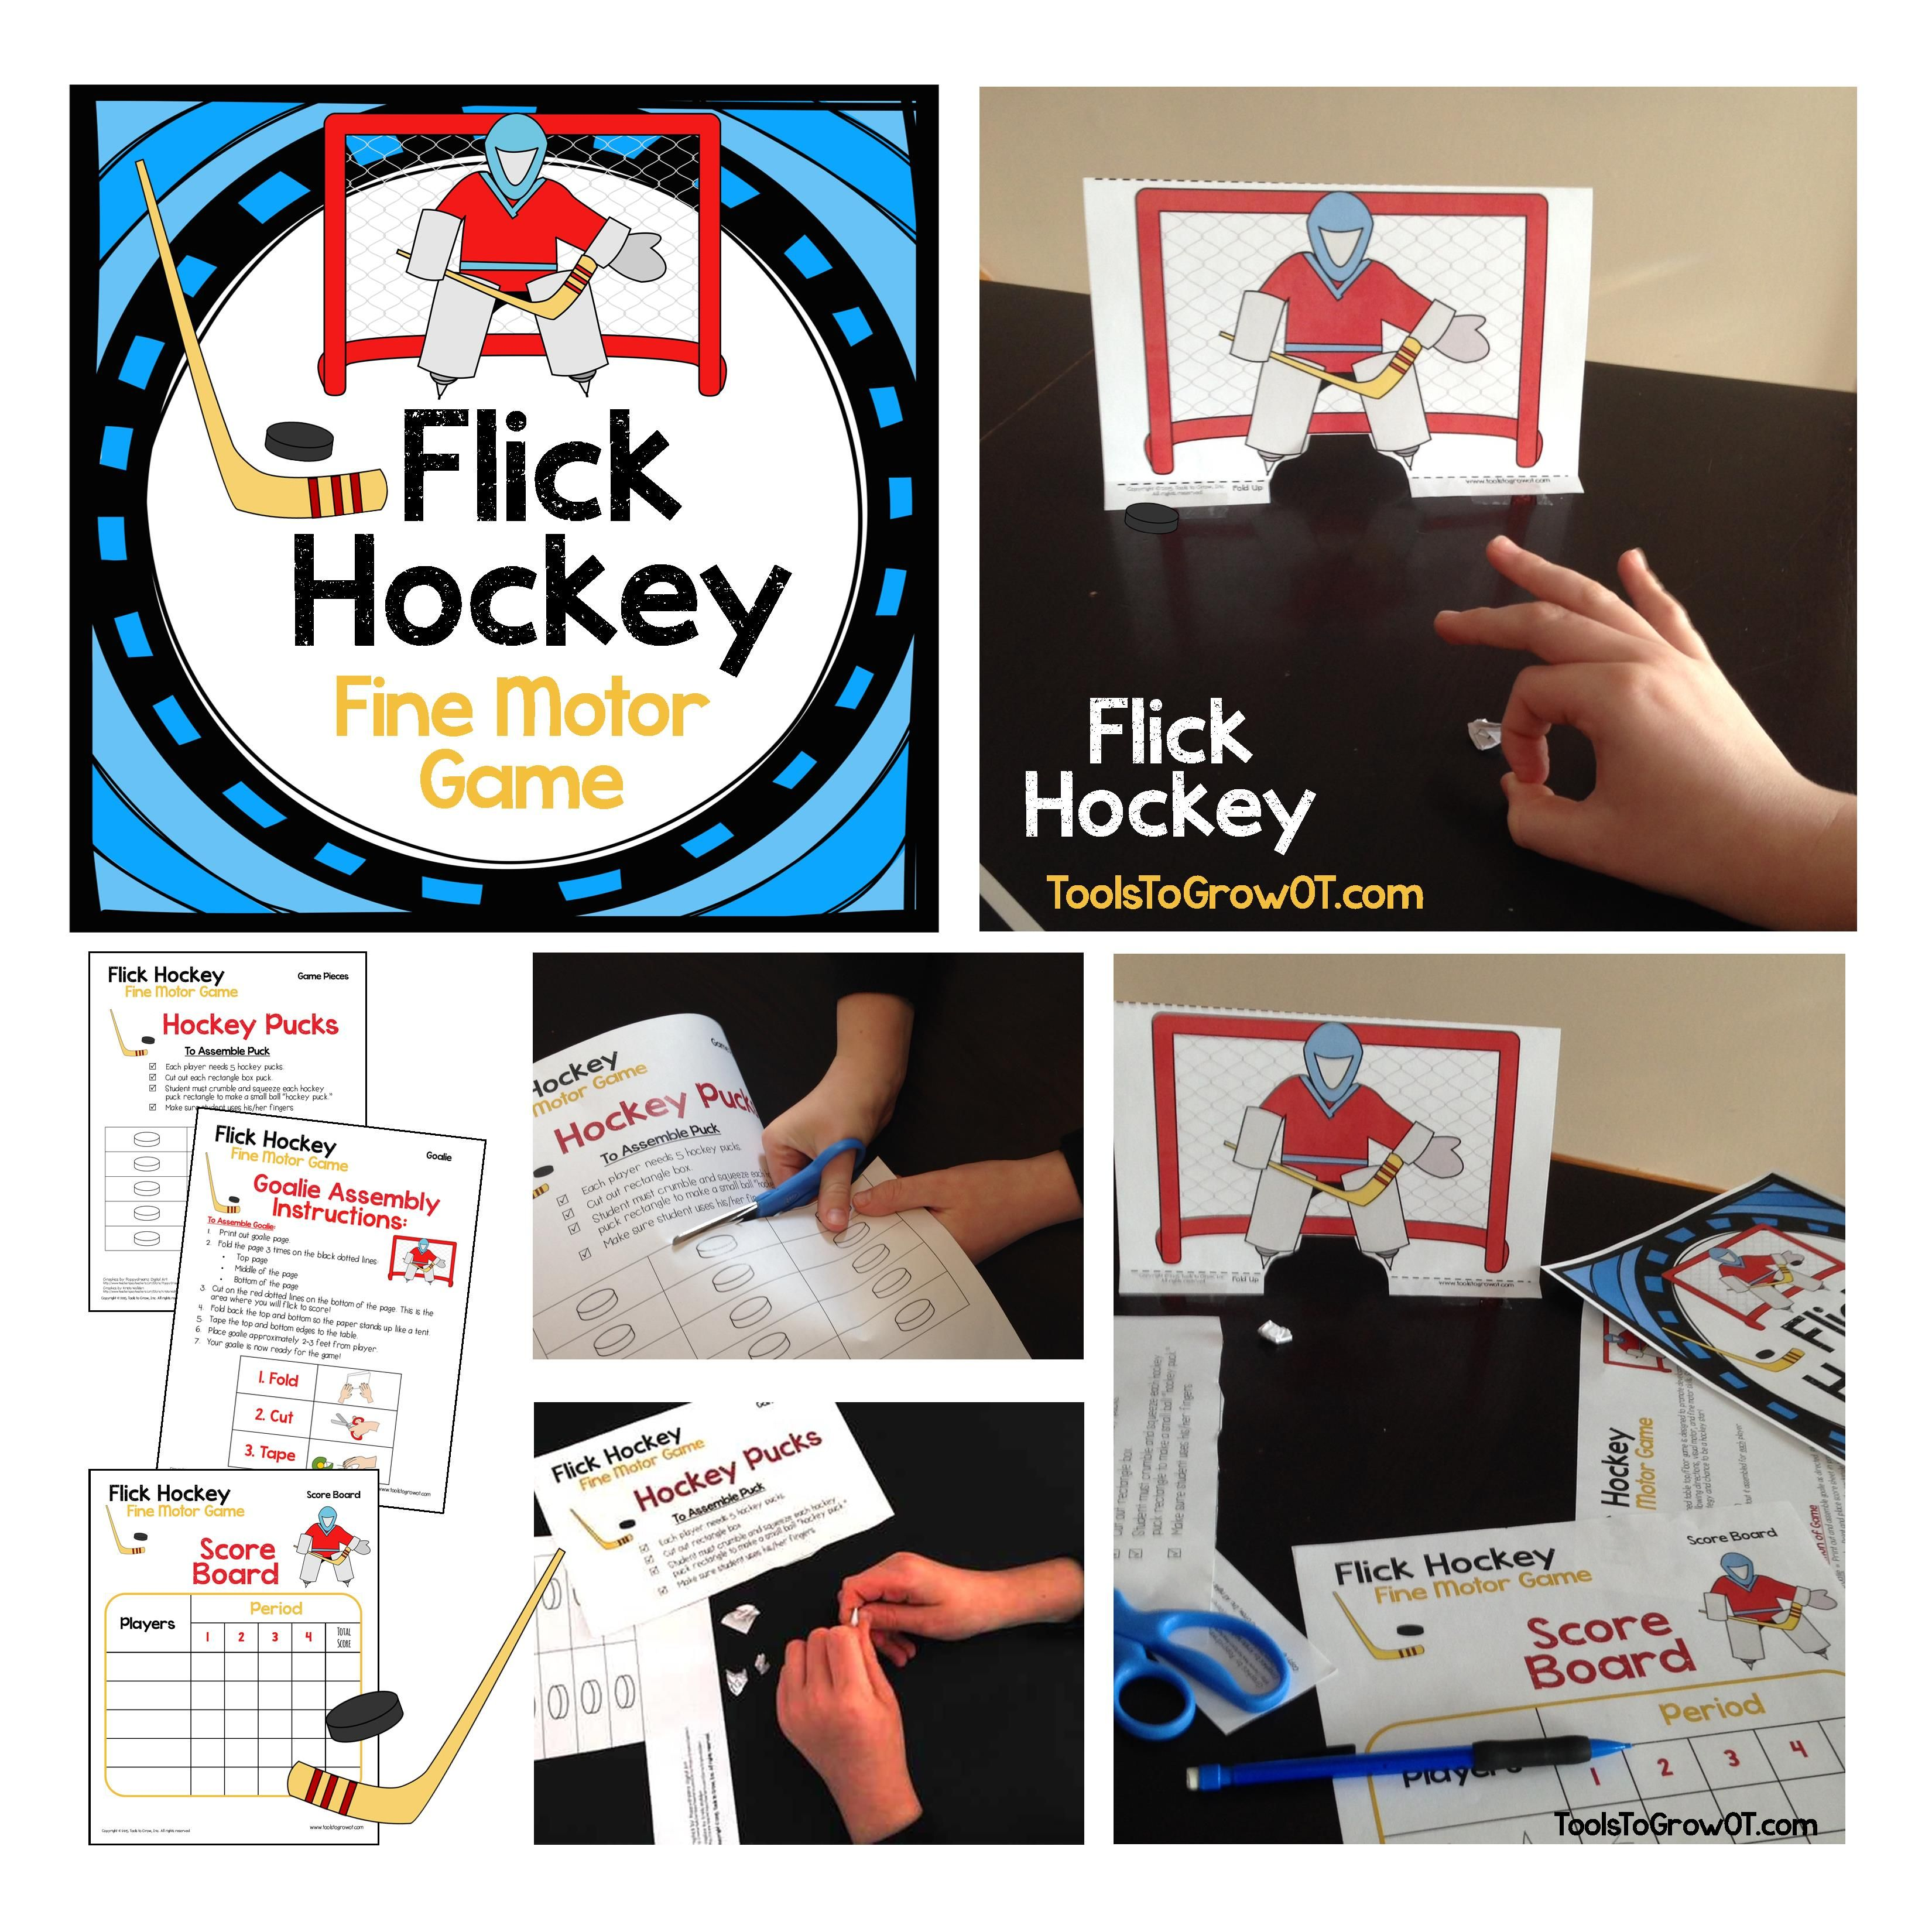 Fine Motor Flick Hockey Game This Hockey Themed Table Top Floor Game Is Designed To Promote